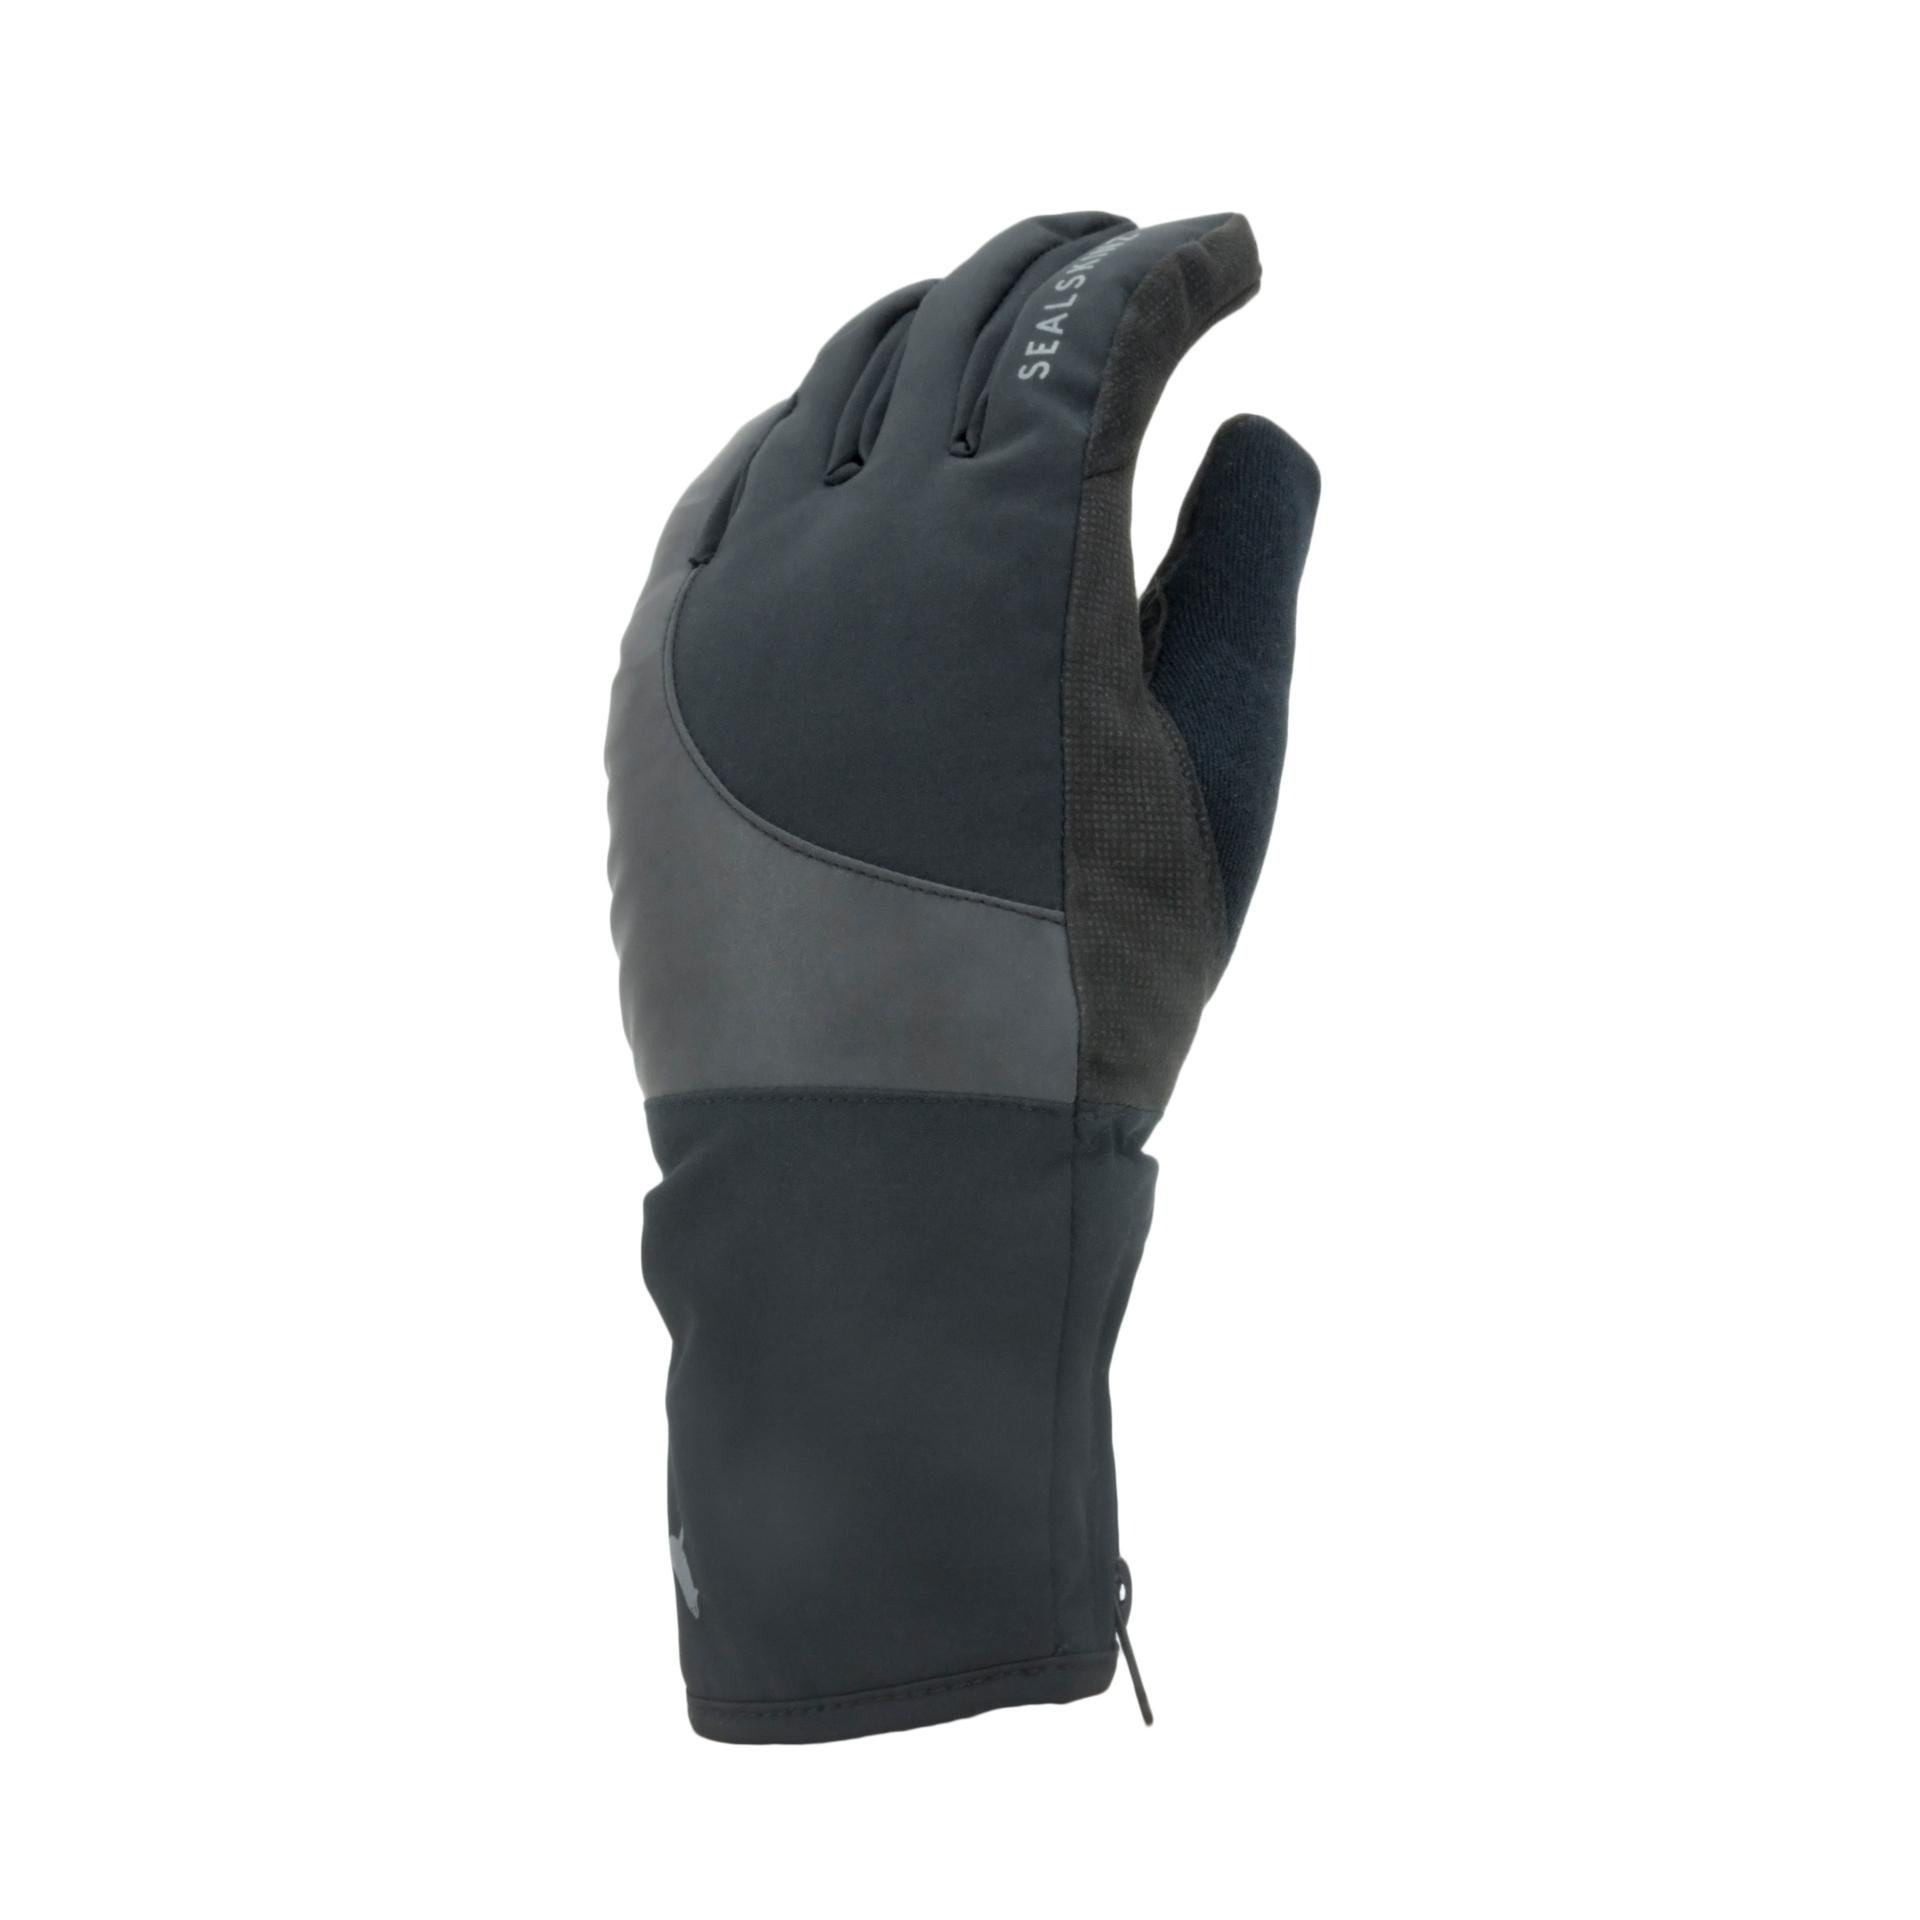 Afbeelding Sealskinz Fietshandschoenen waterdicht voor Heren Zwart  / Waterproof Cold Weather Reflective Cycle Glove Black